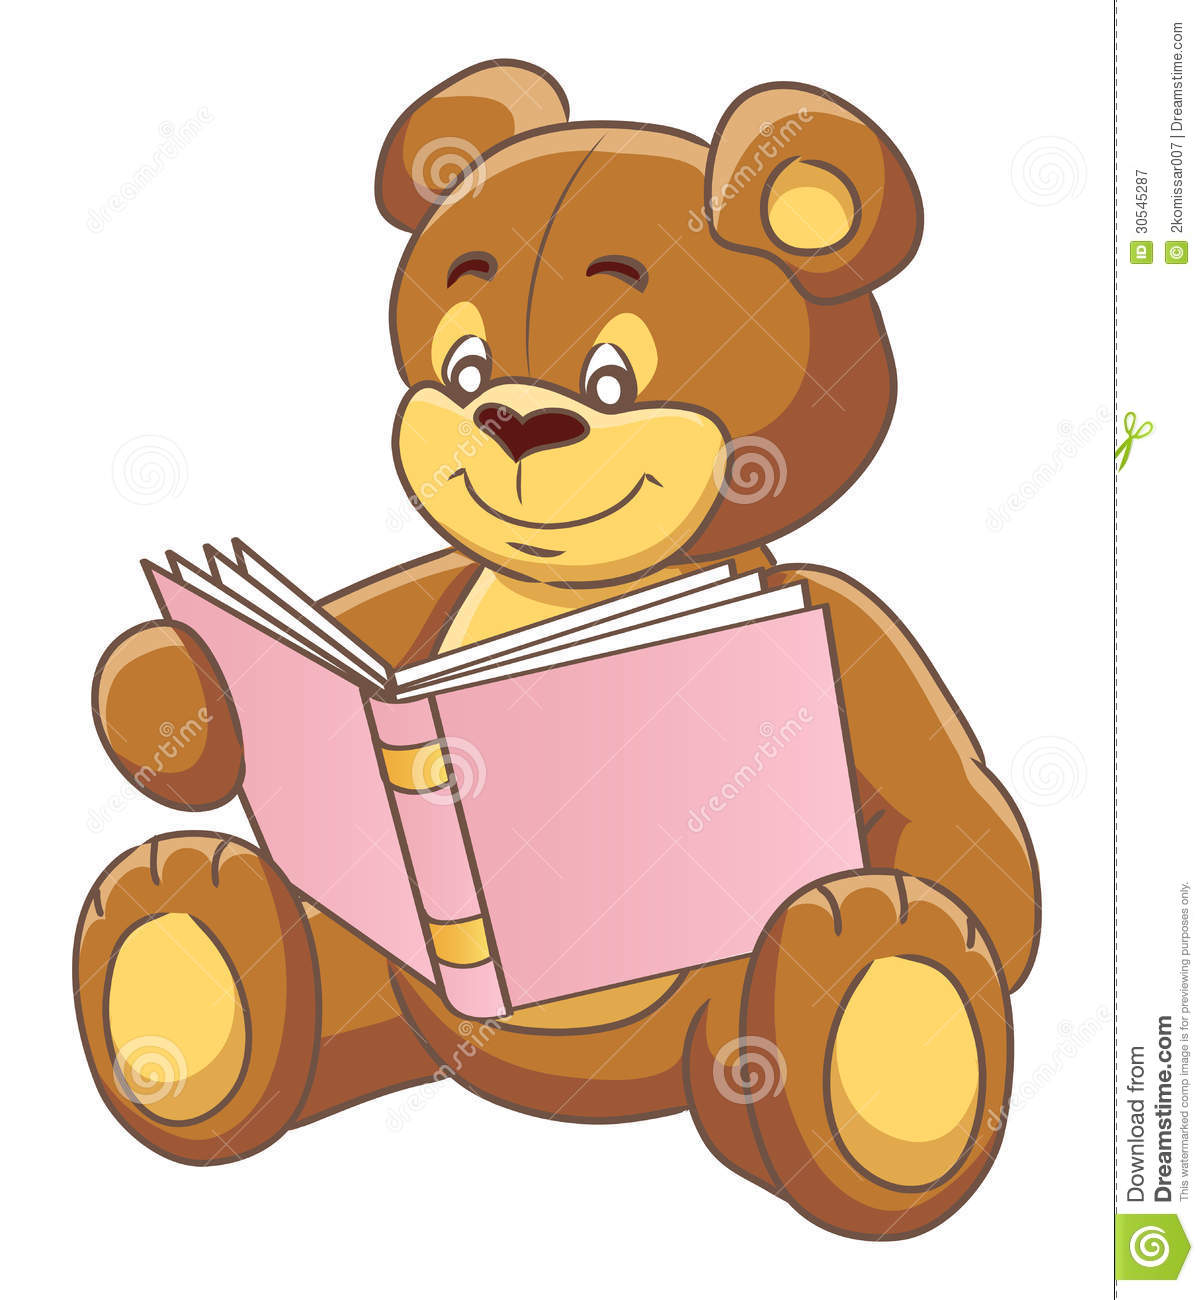 Teddy bear and book stock vector. Image of studying - 30545287 - photo#11